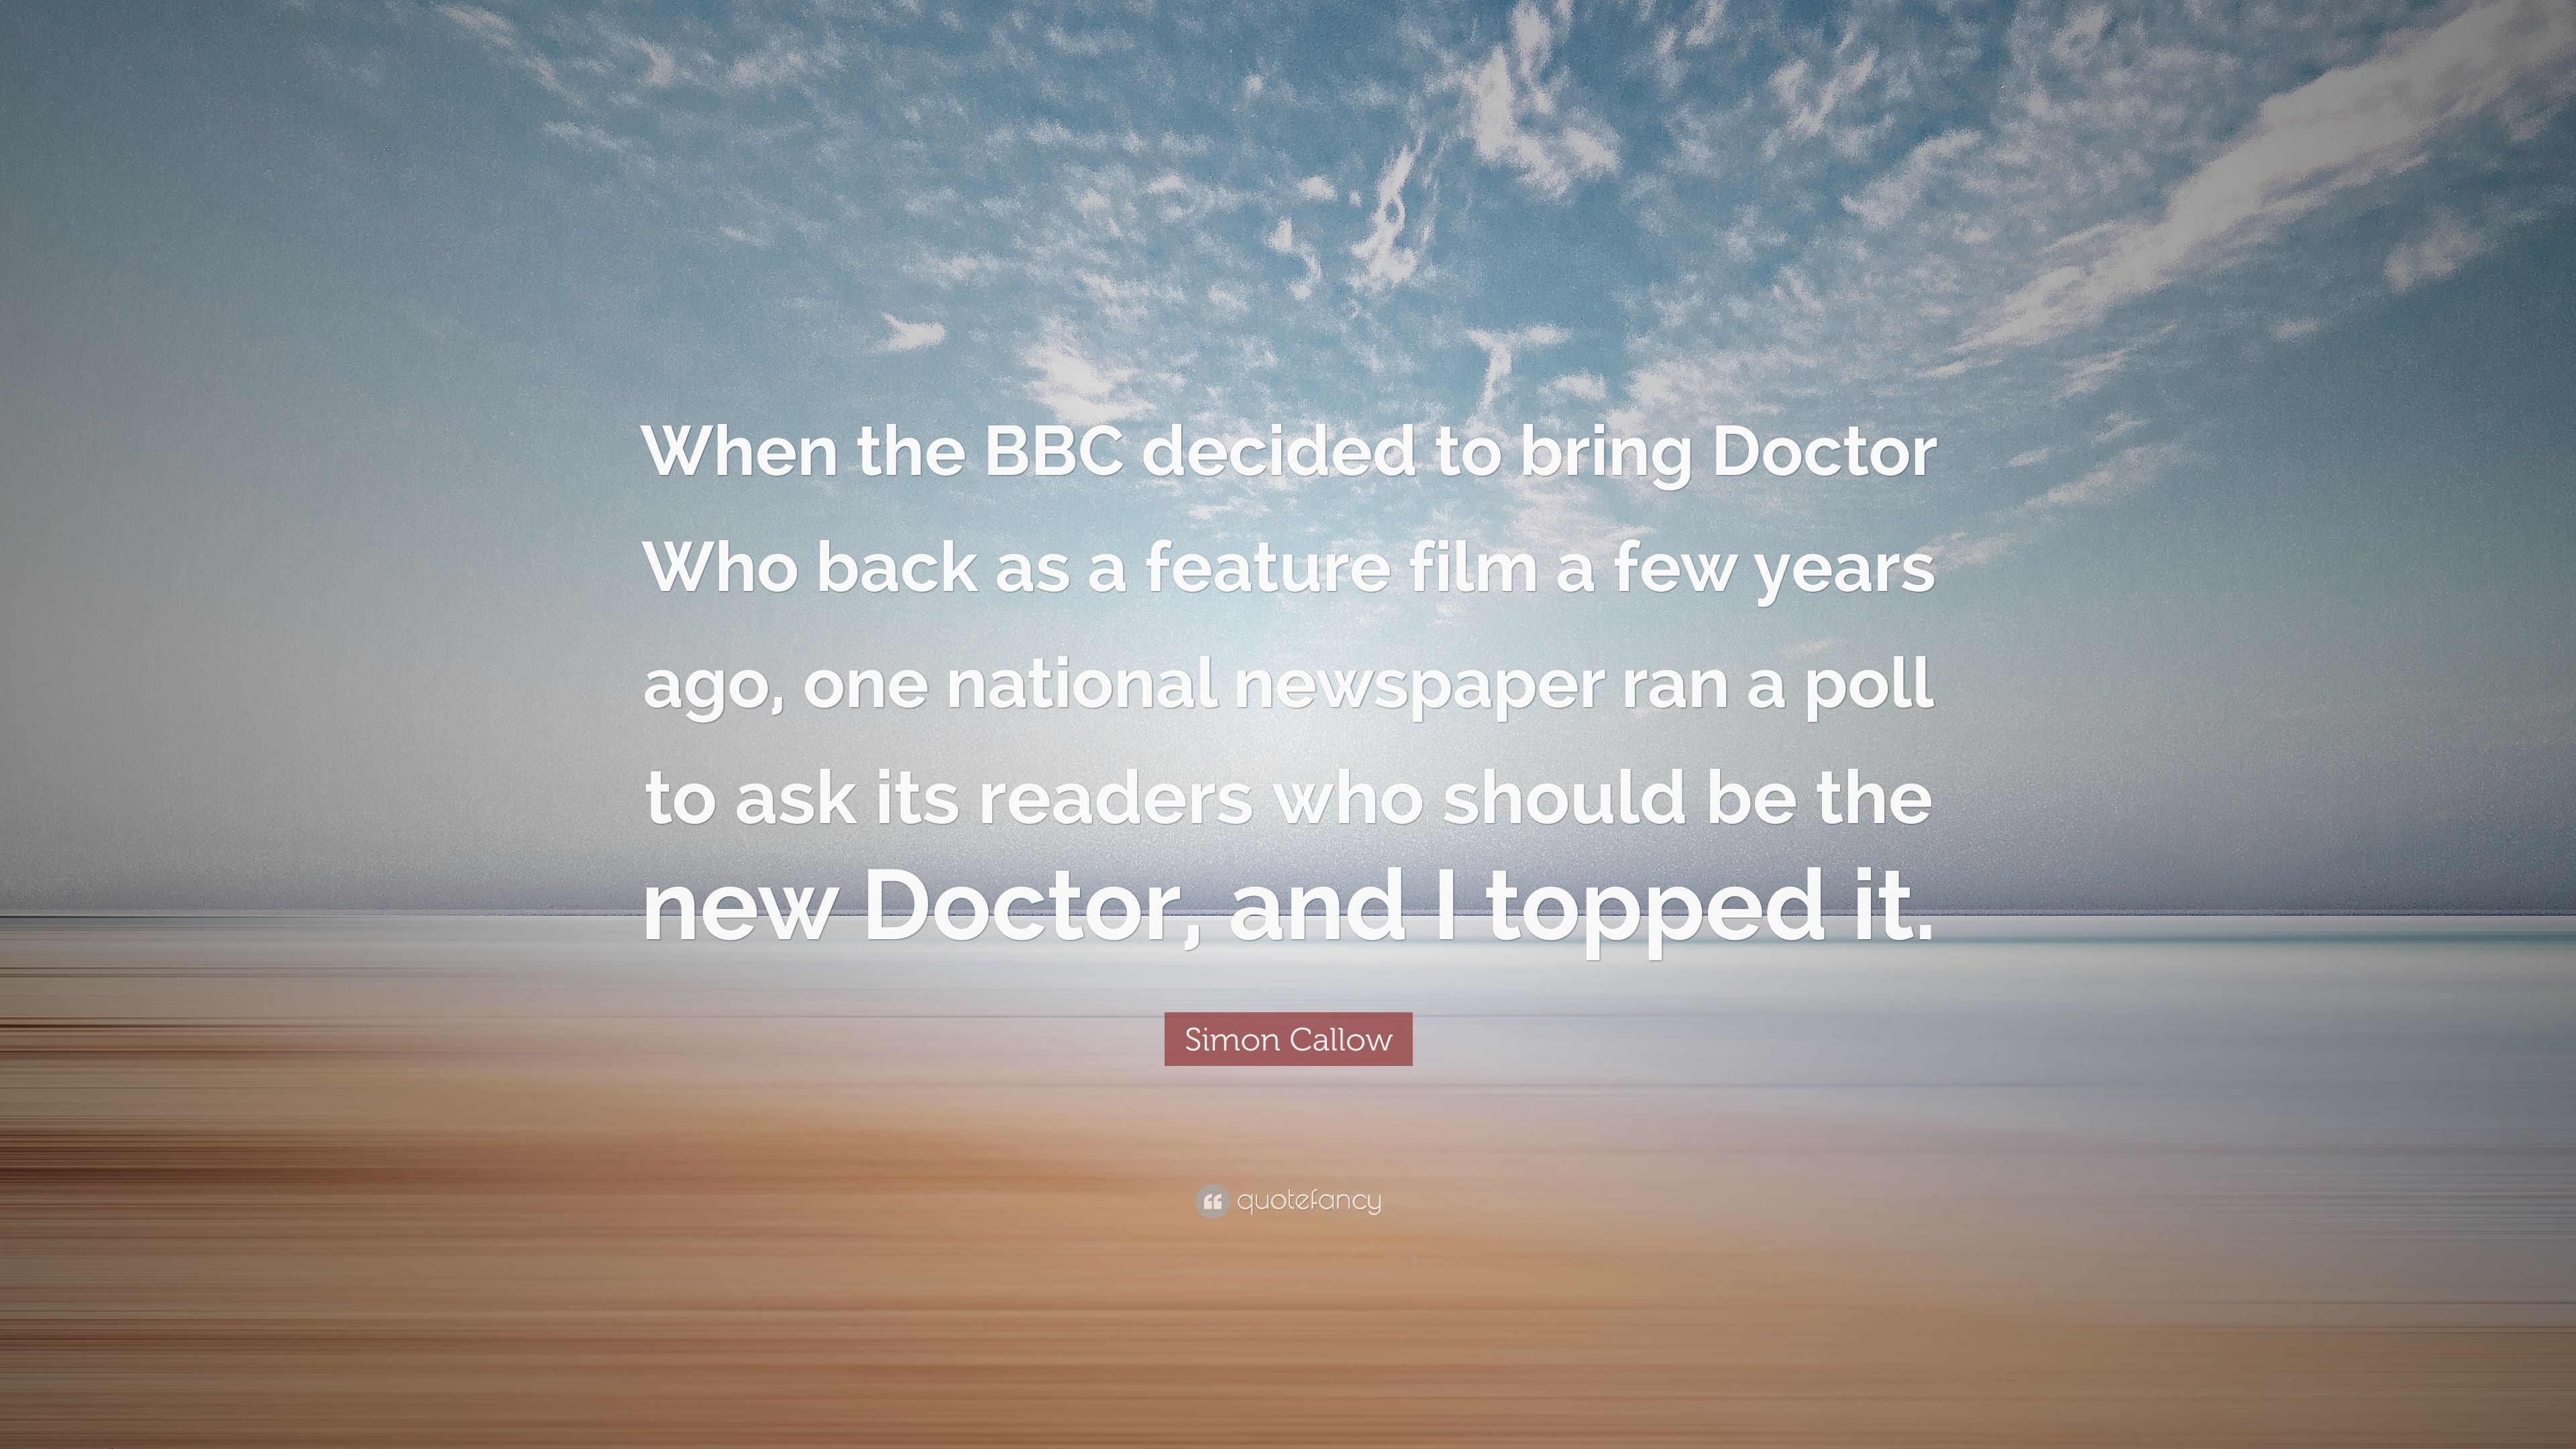 simon callow quote when the bbc decided to bring doctor who back as a